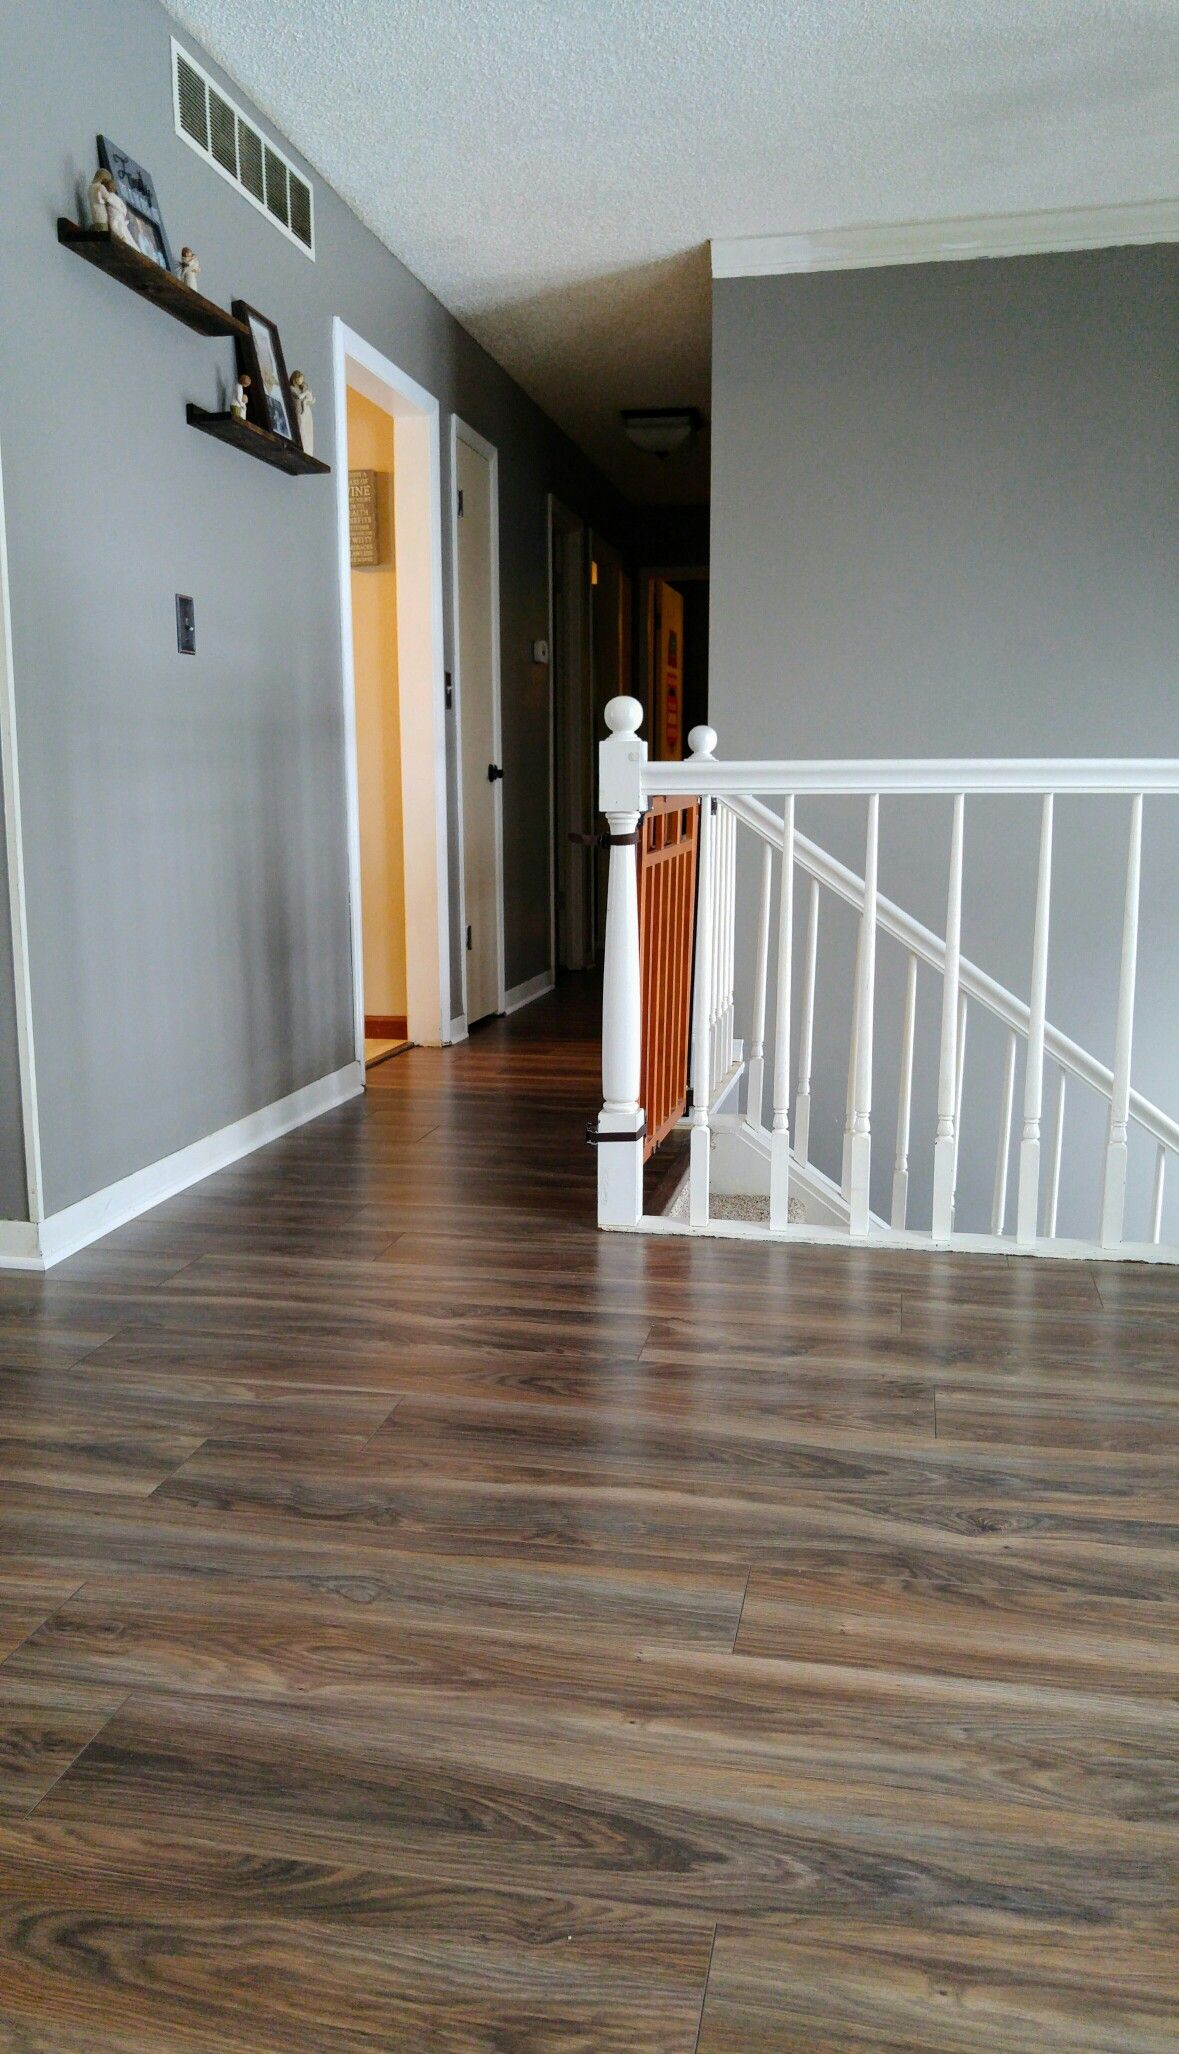 Laminate Wood Floors Elephant Skin Paint Behr Basement Remodeling Wood Floor Design Flooring